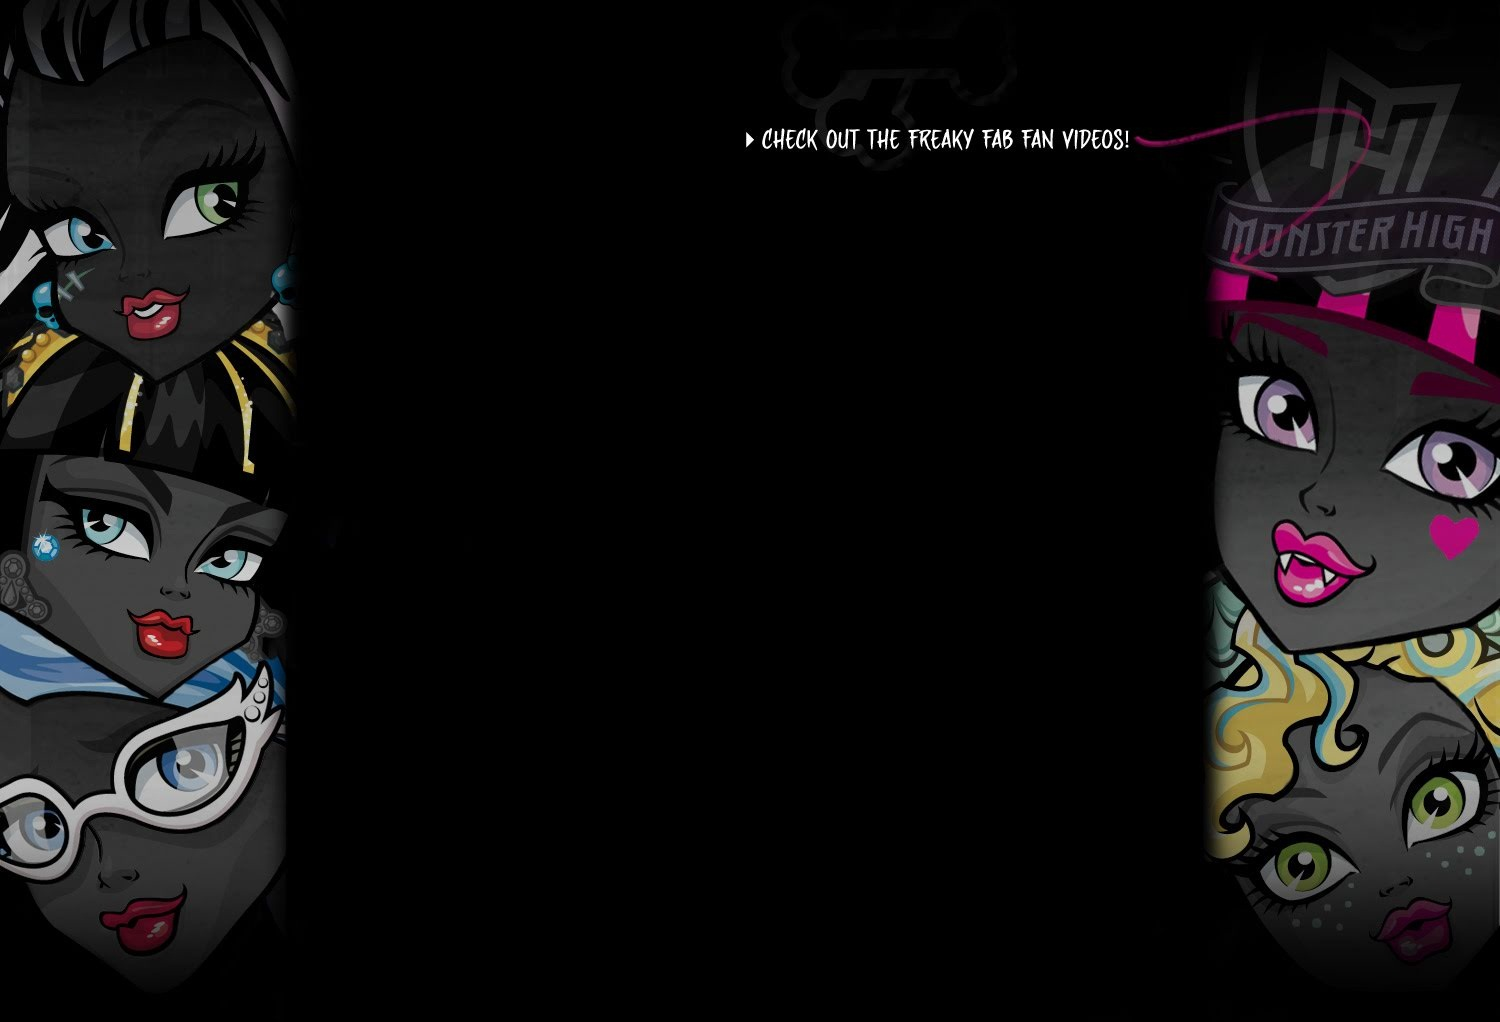 Fondos De Pantalla De Monster High: Monster High: Nuevo Fondo De Pantalla Monstruoso